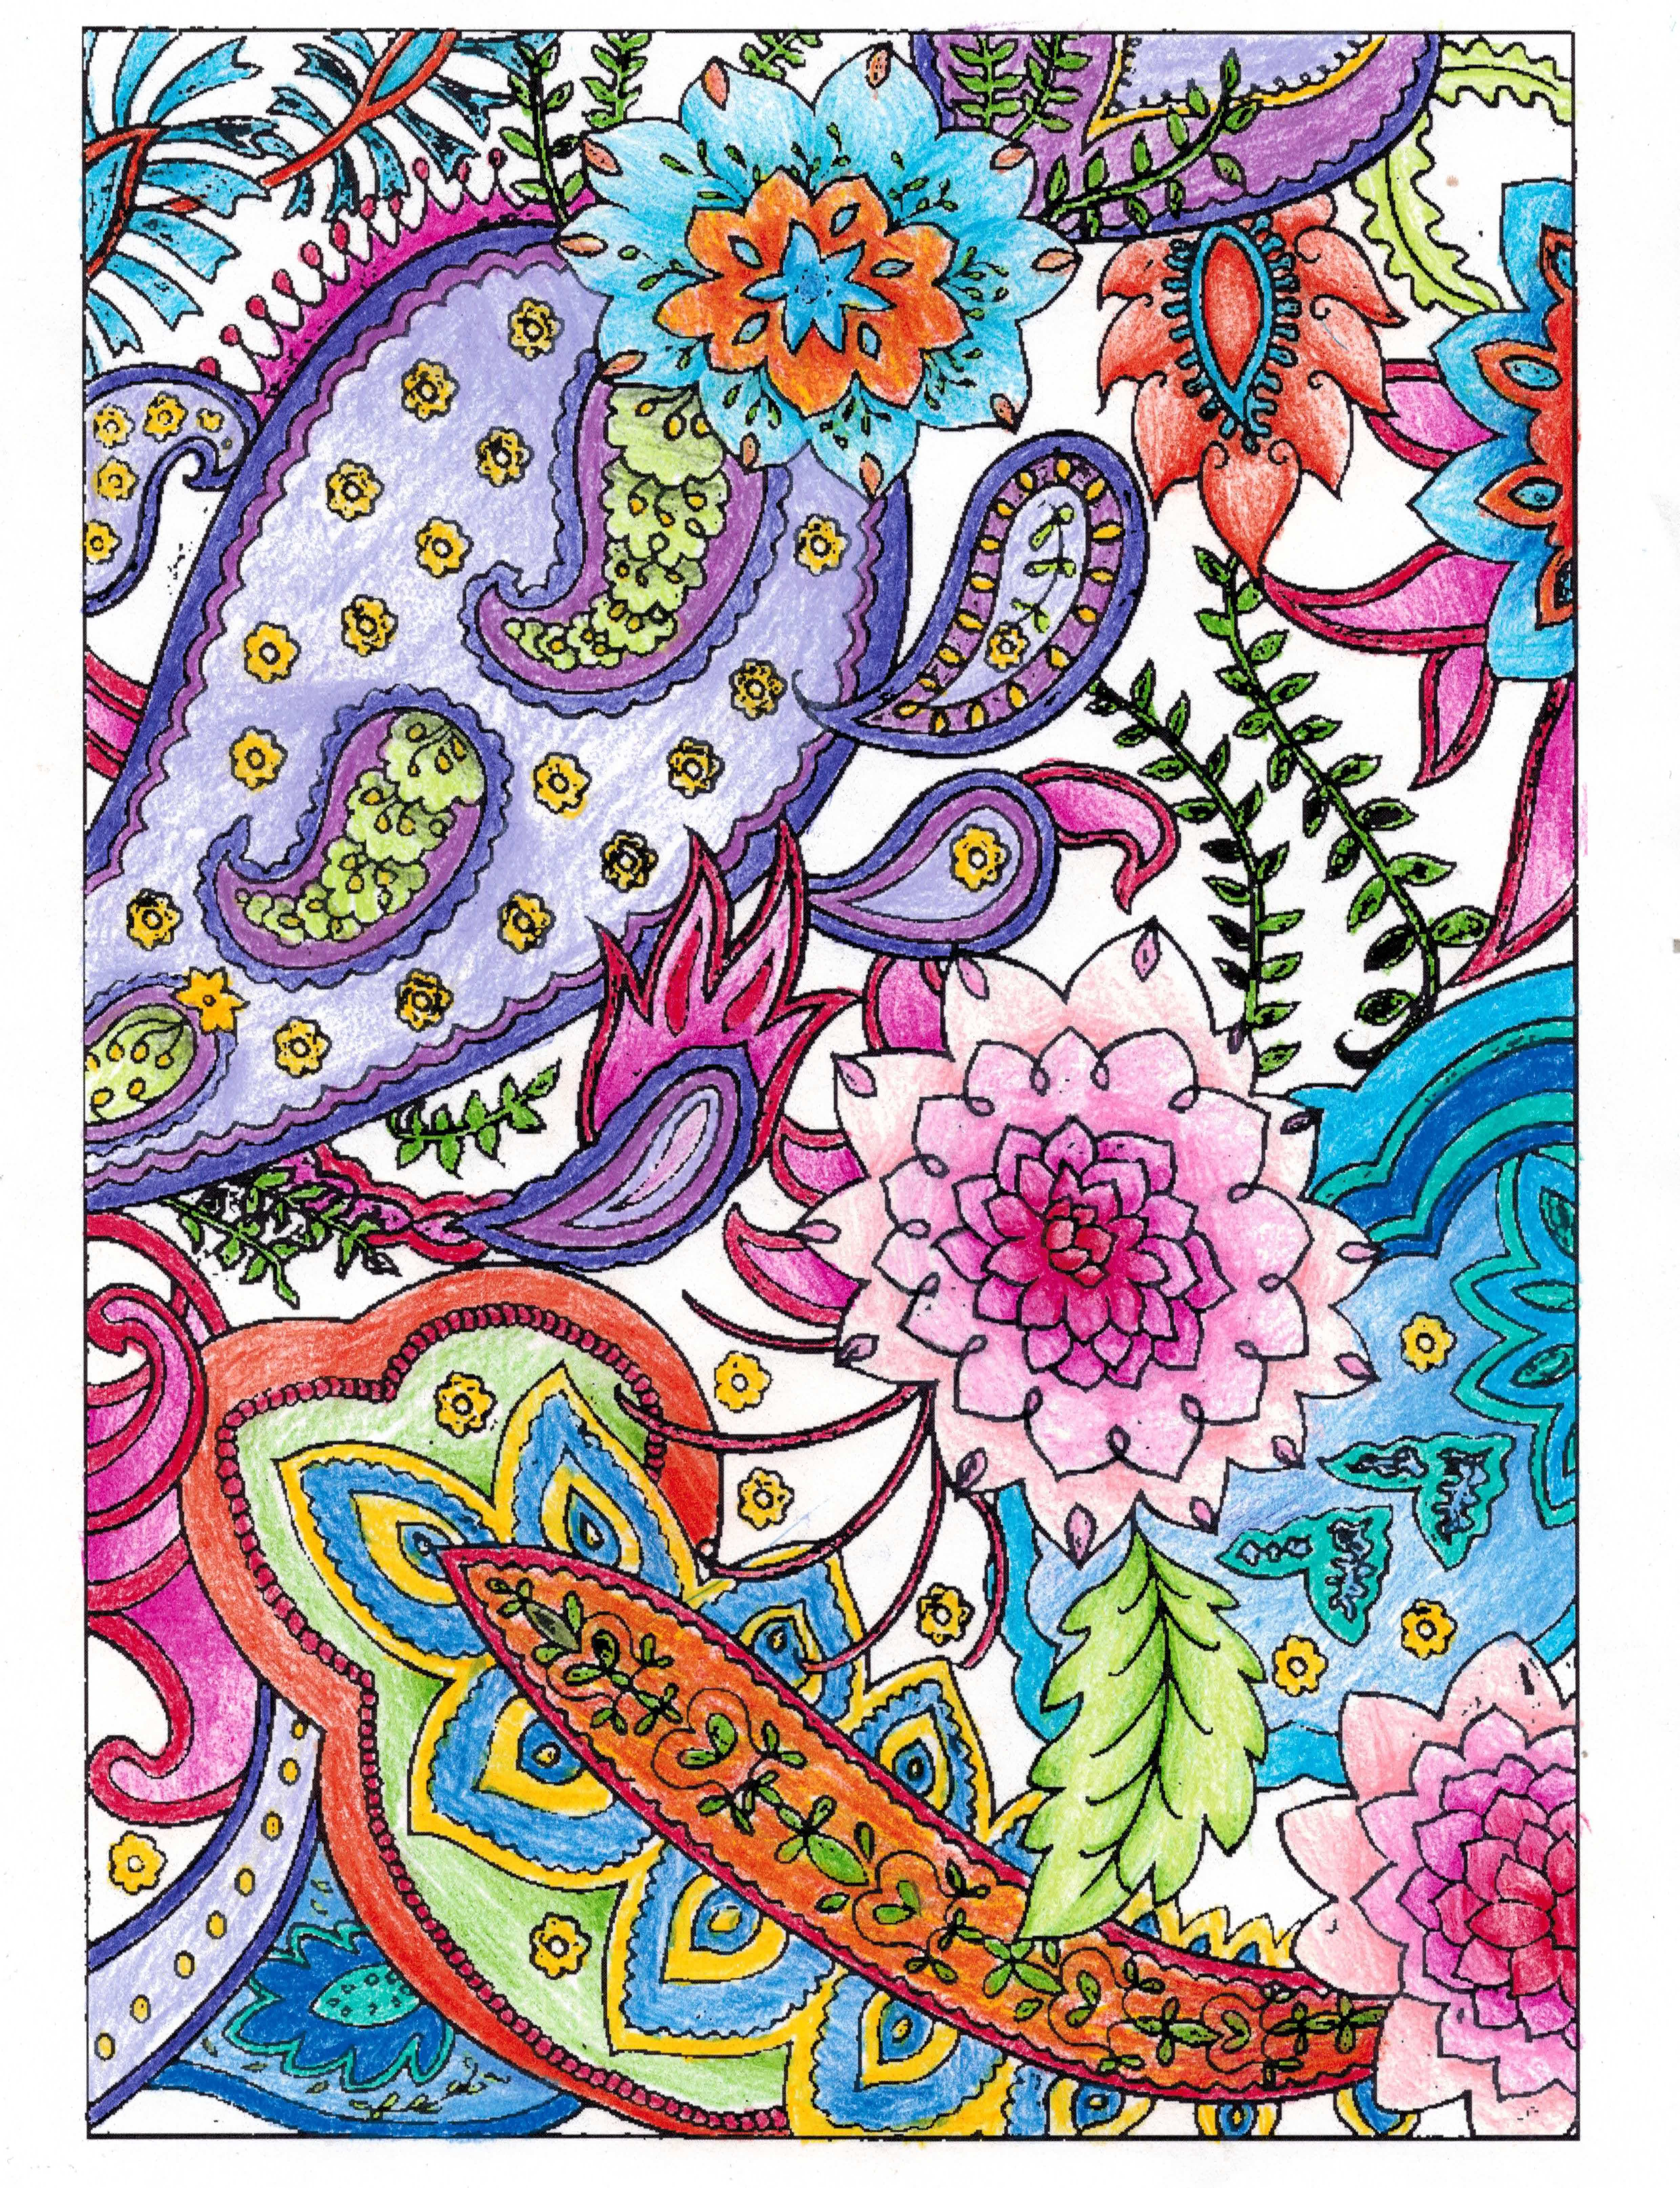 abby 18 division from paisley designs coloring book - Paisley Designs Coloring Book